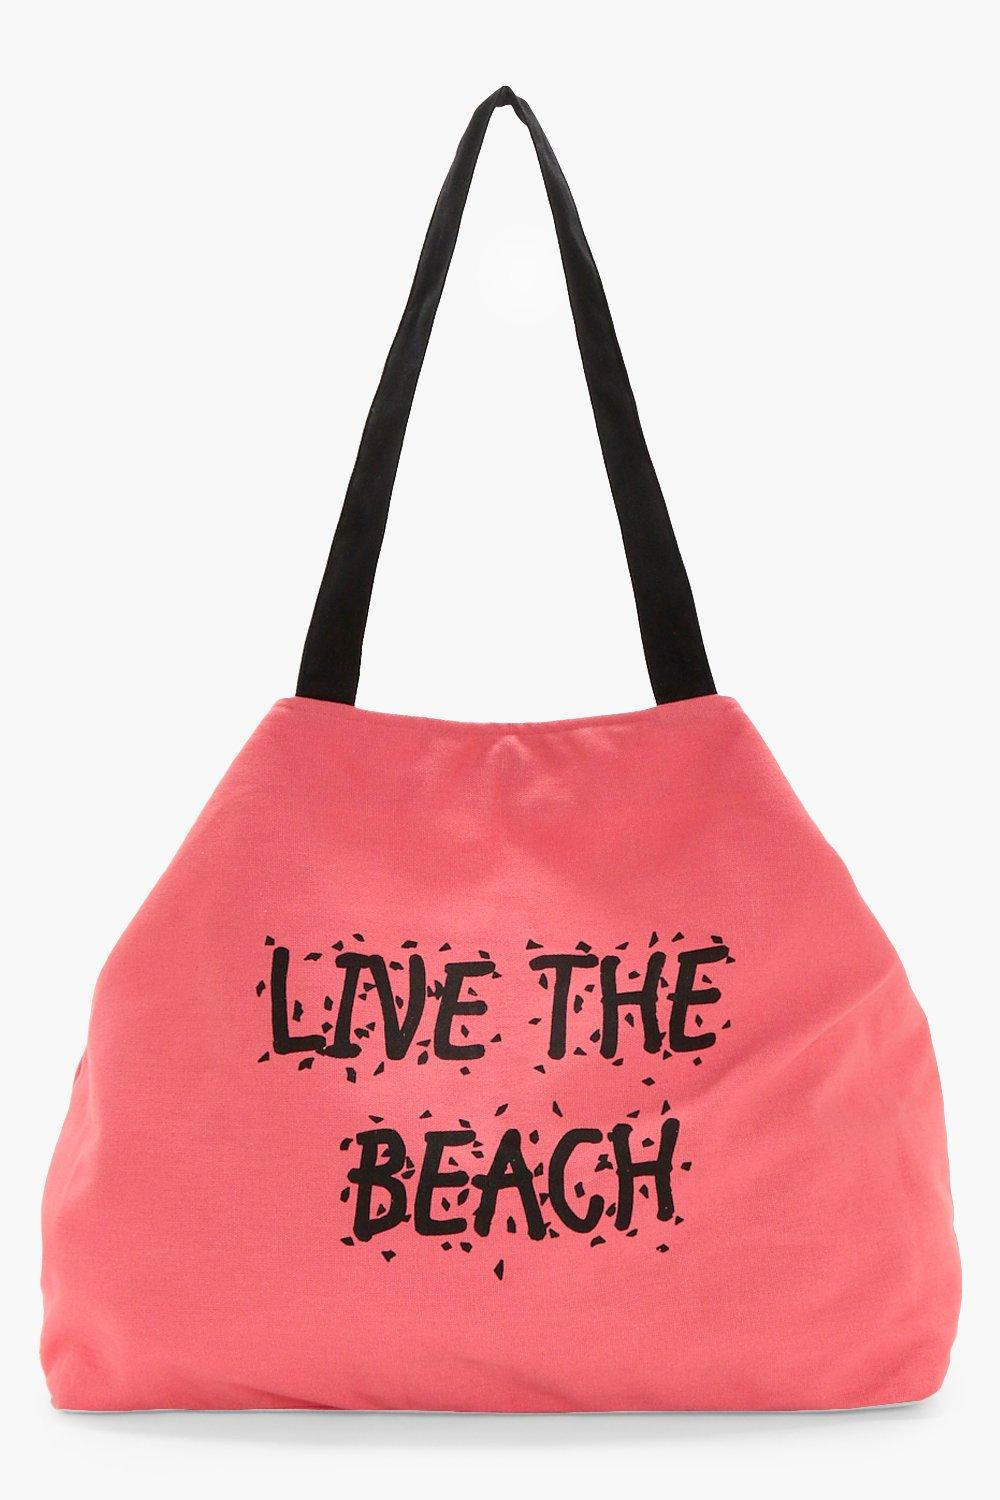 Slogan Canvas Beach Bag - coral - Olivia Slogan Ca